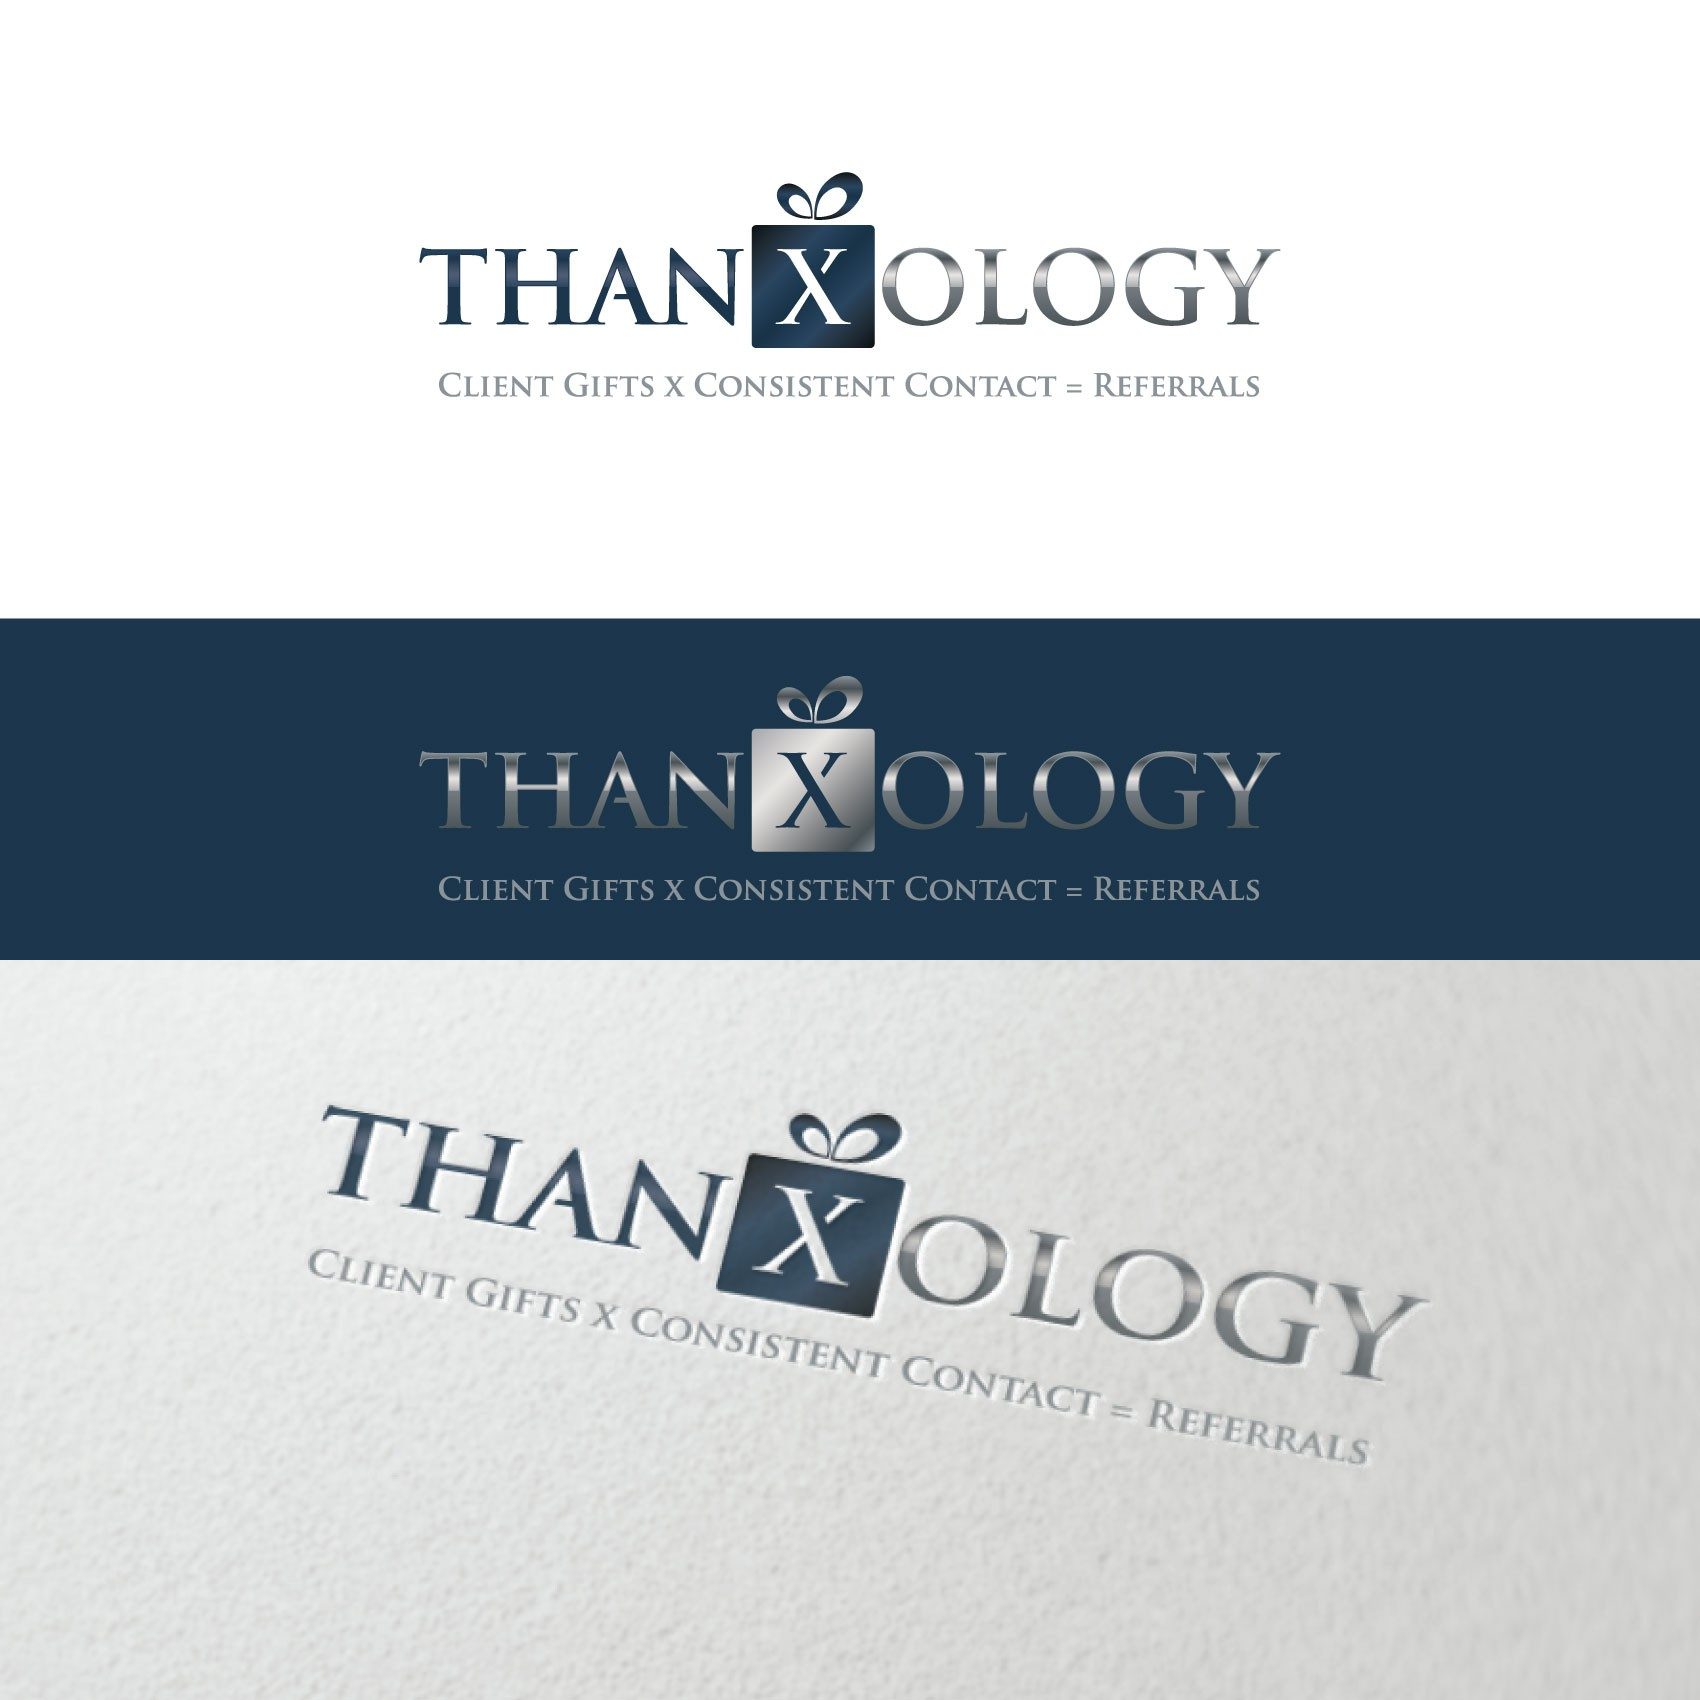 Design a marketing/referral advertising company's logo for thanxology.